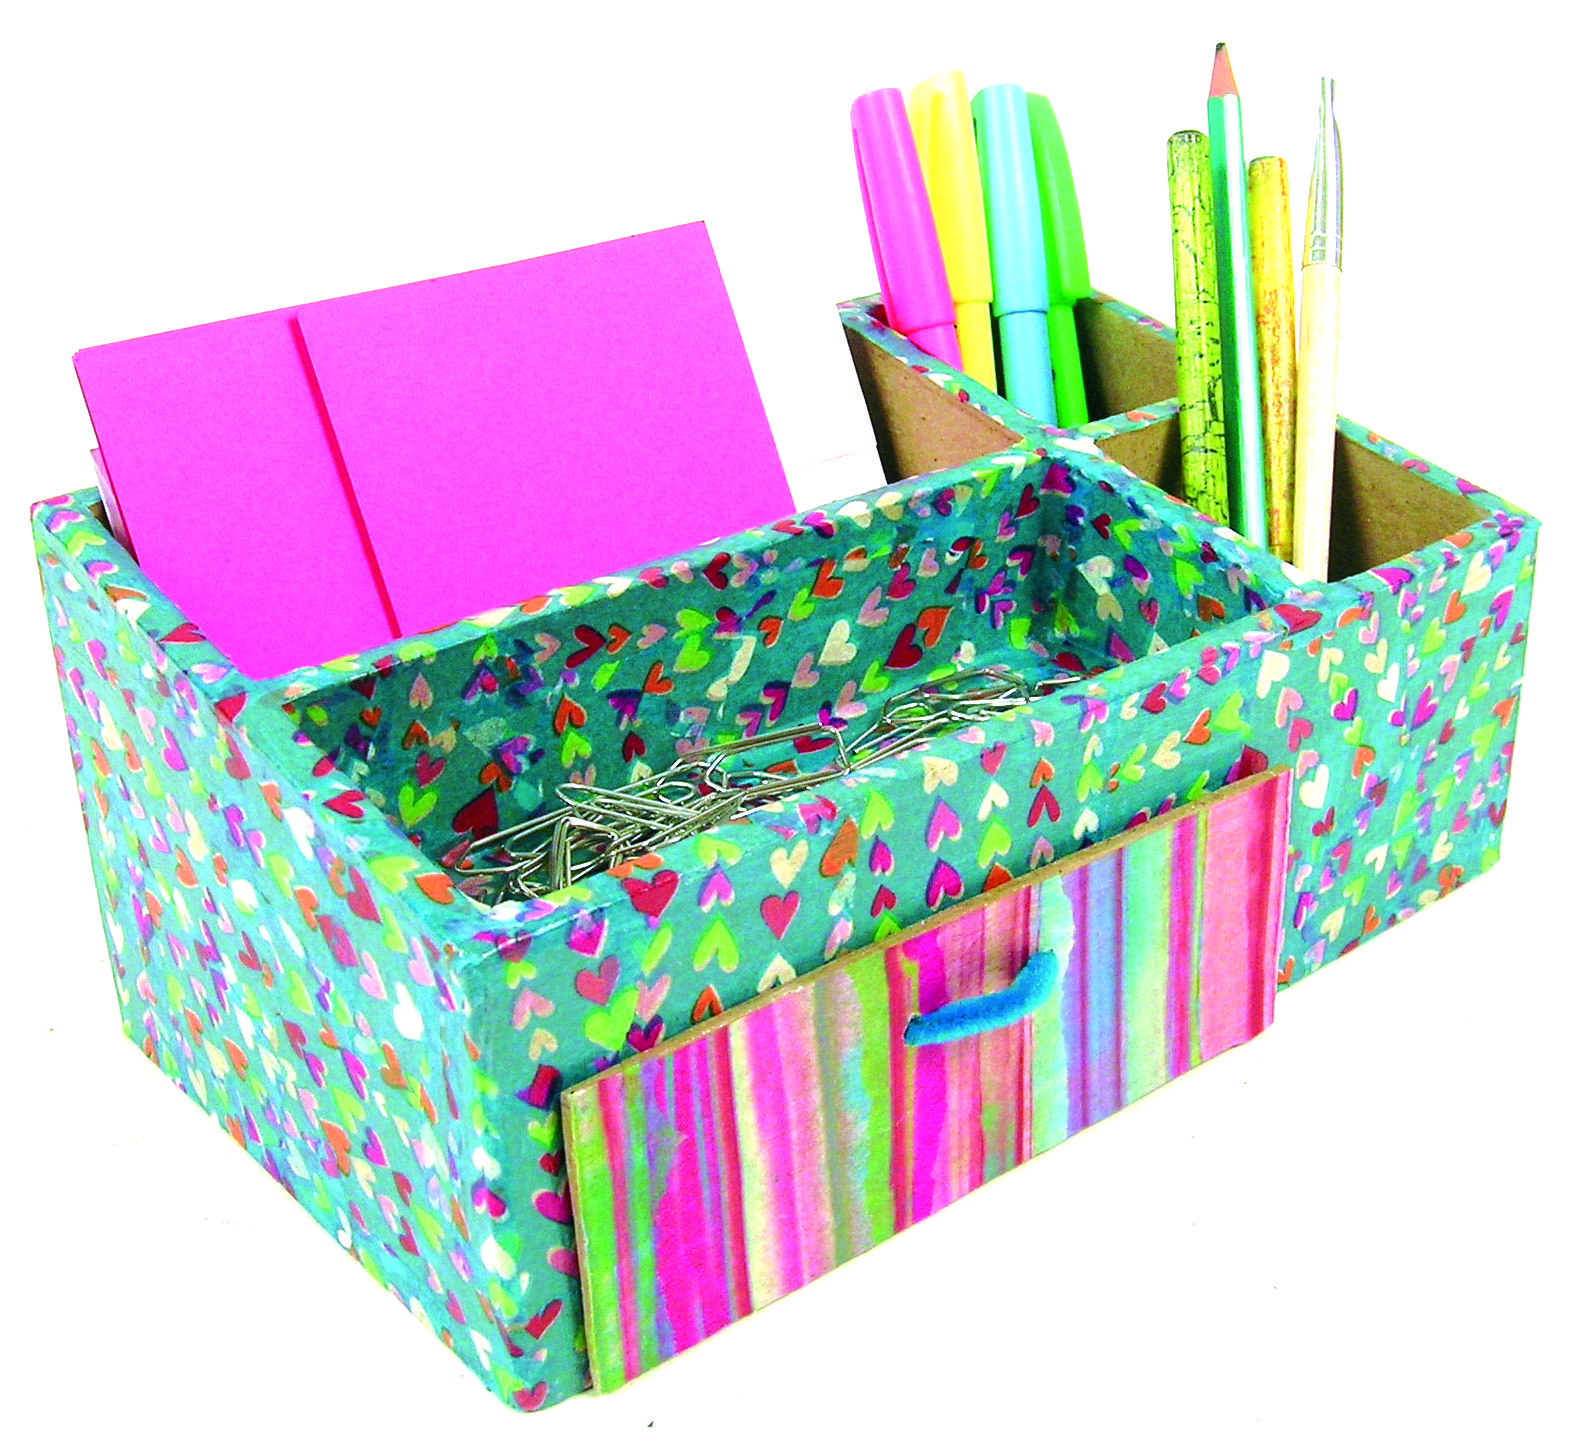 Decopatch Muebles Organise Your Desk With A Decopatch Decoupage Table Tidy